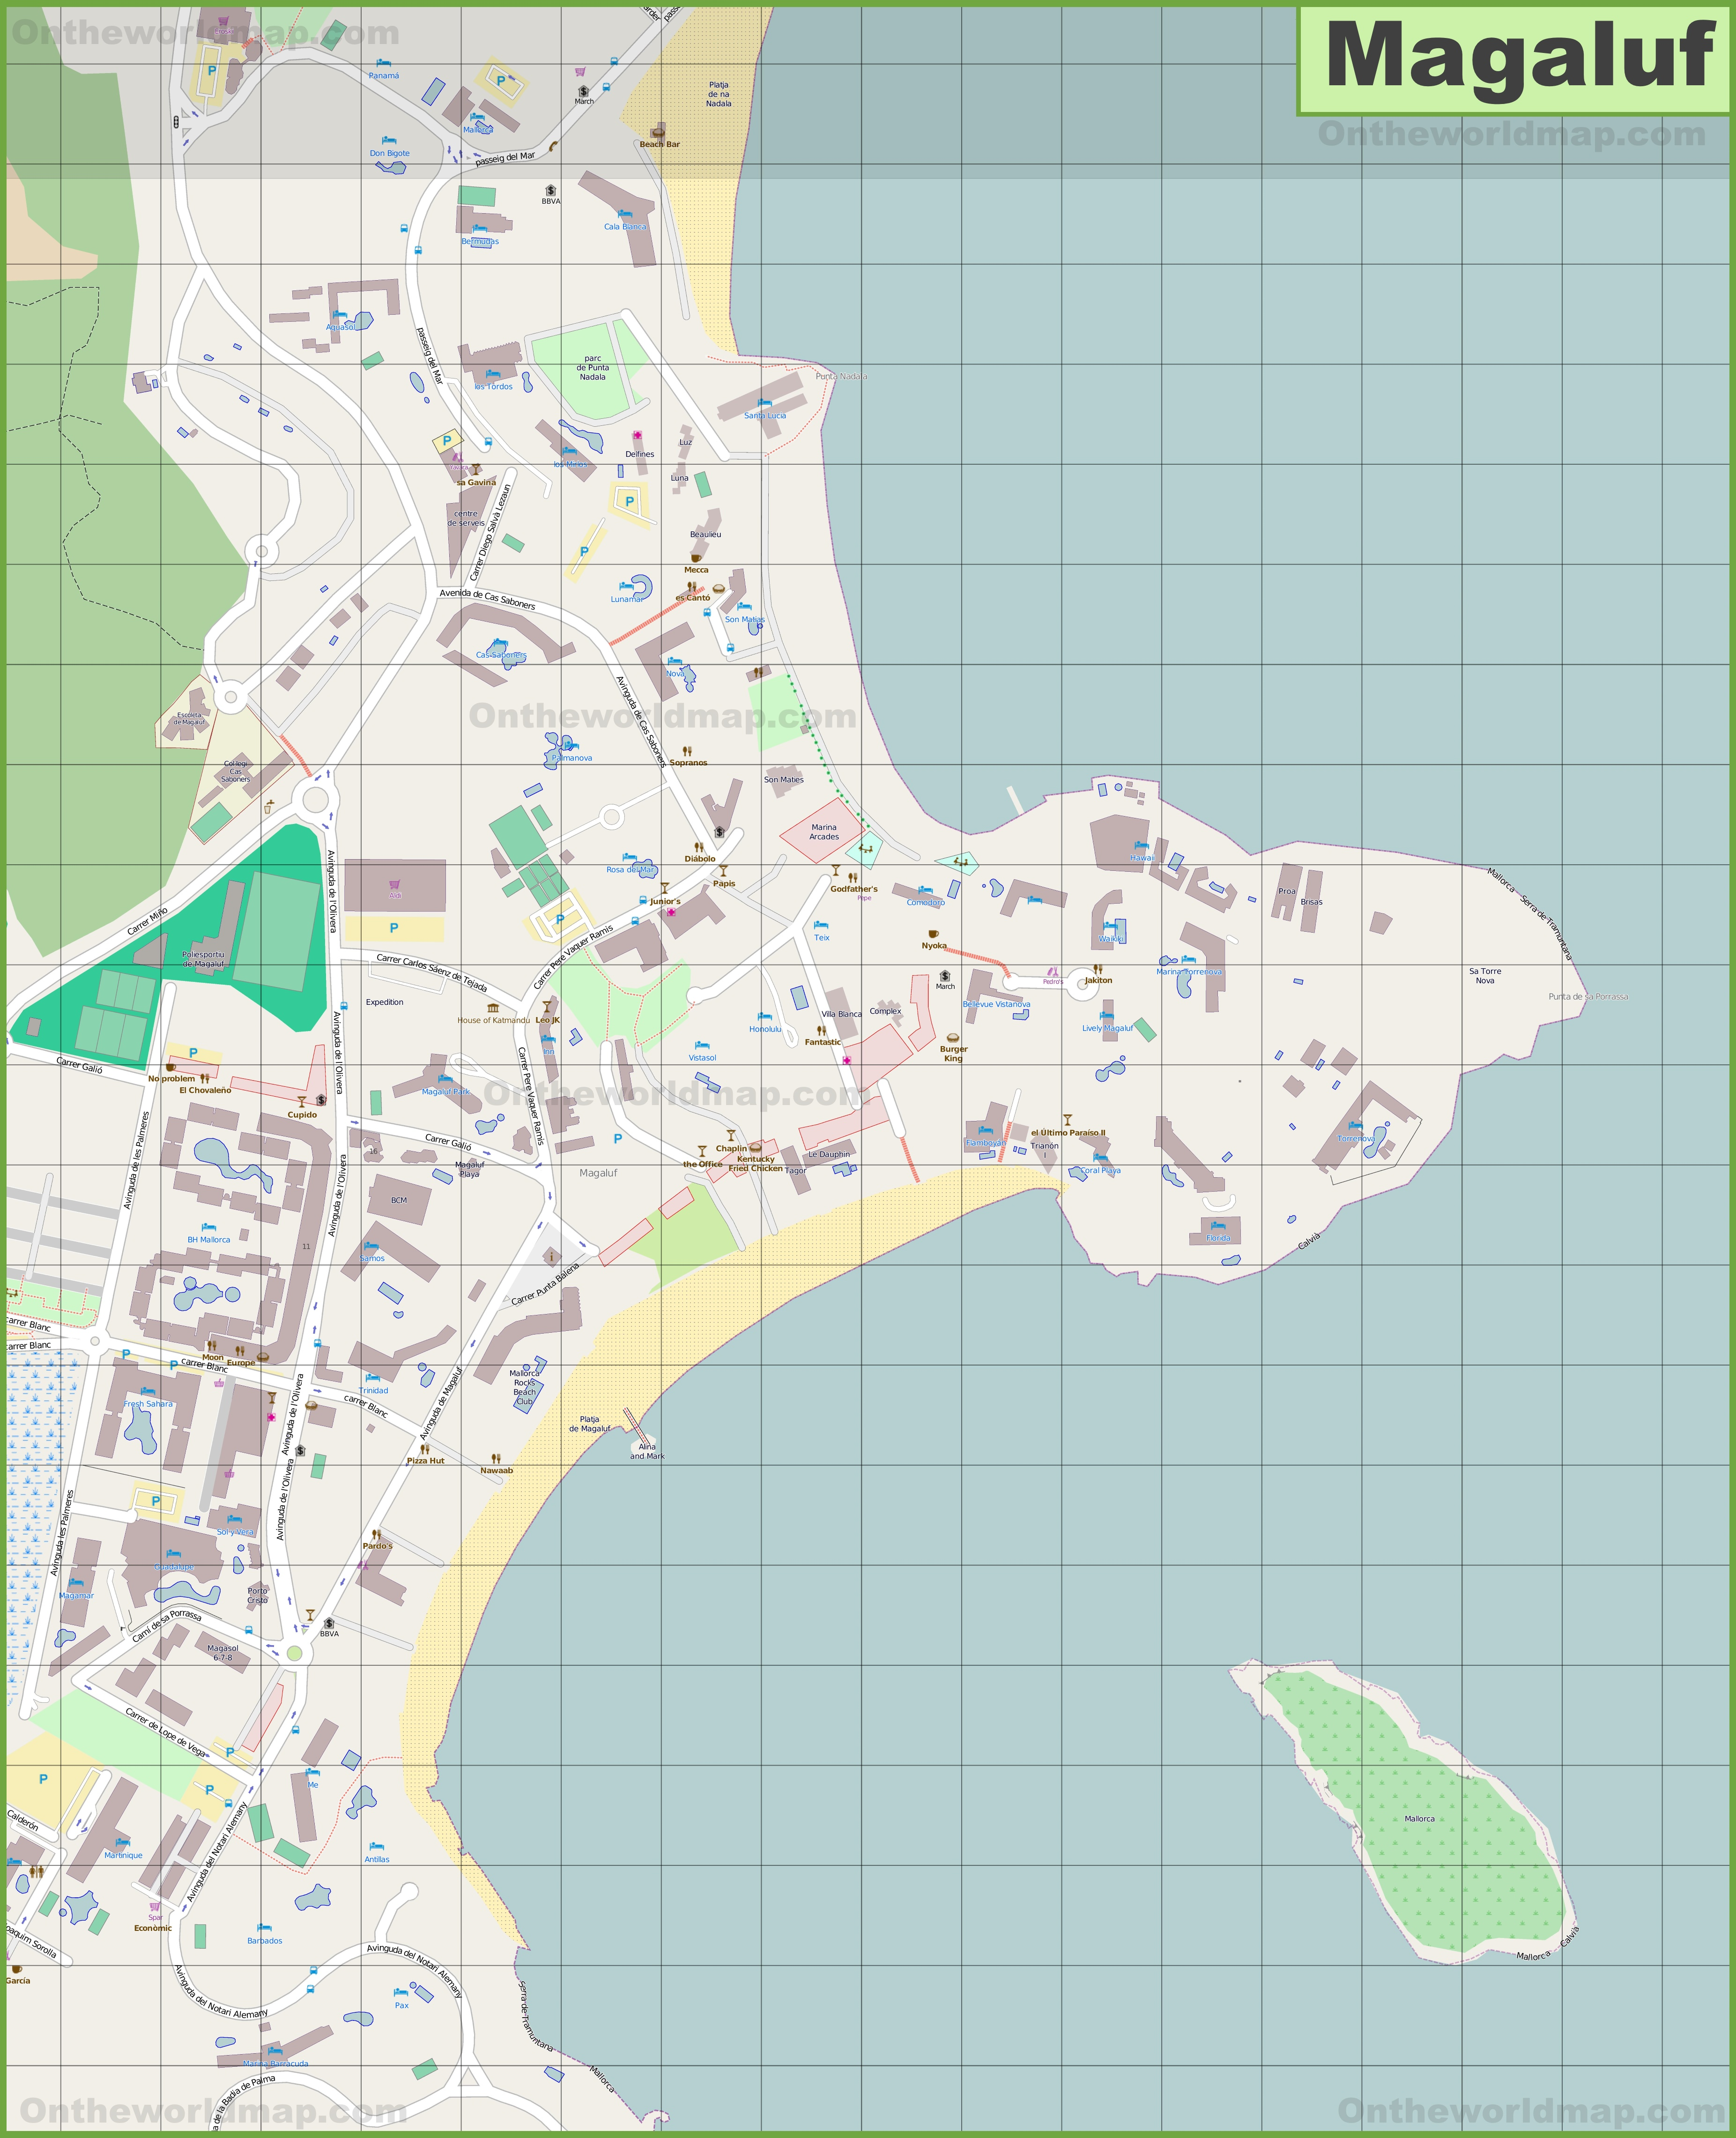 Map Of Magaluf Large detailed map of Magaluf